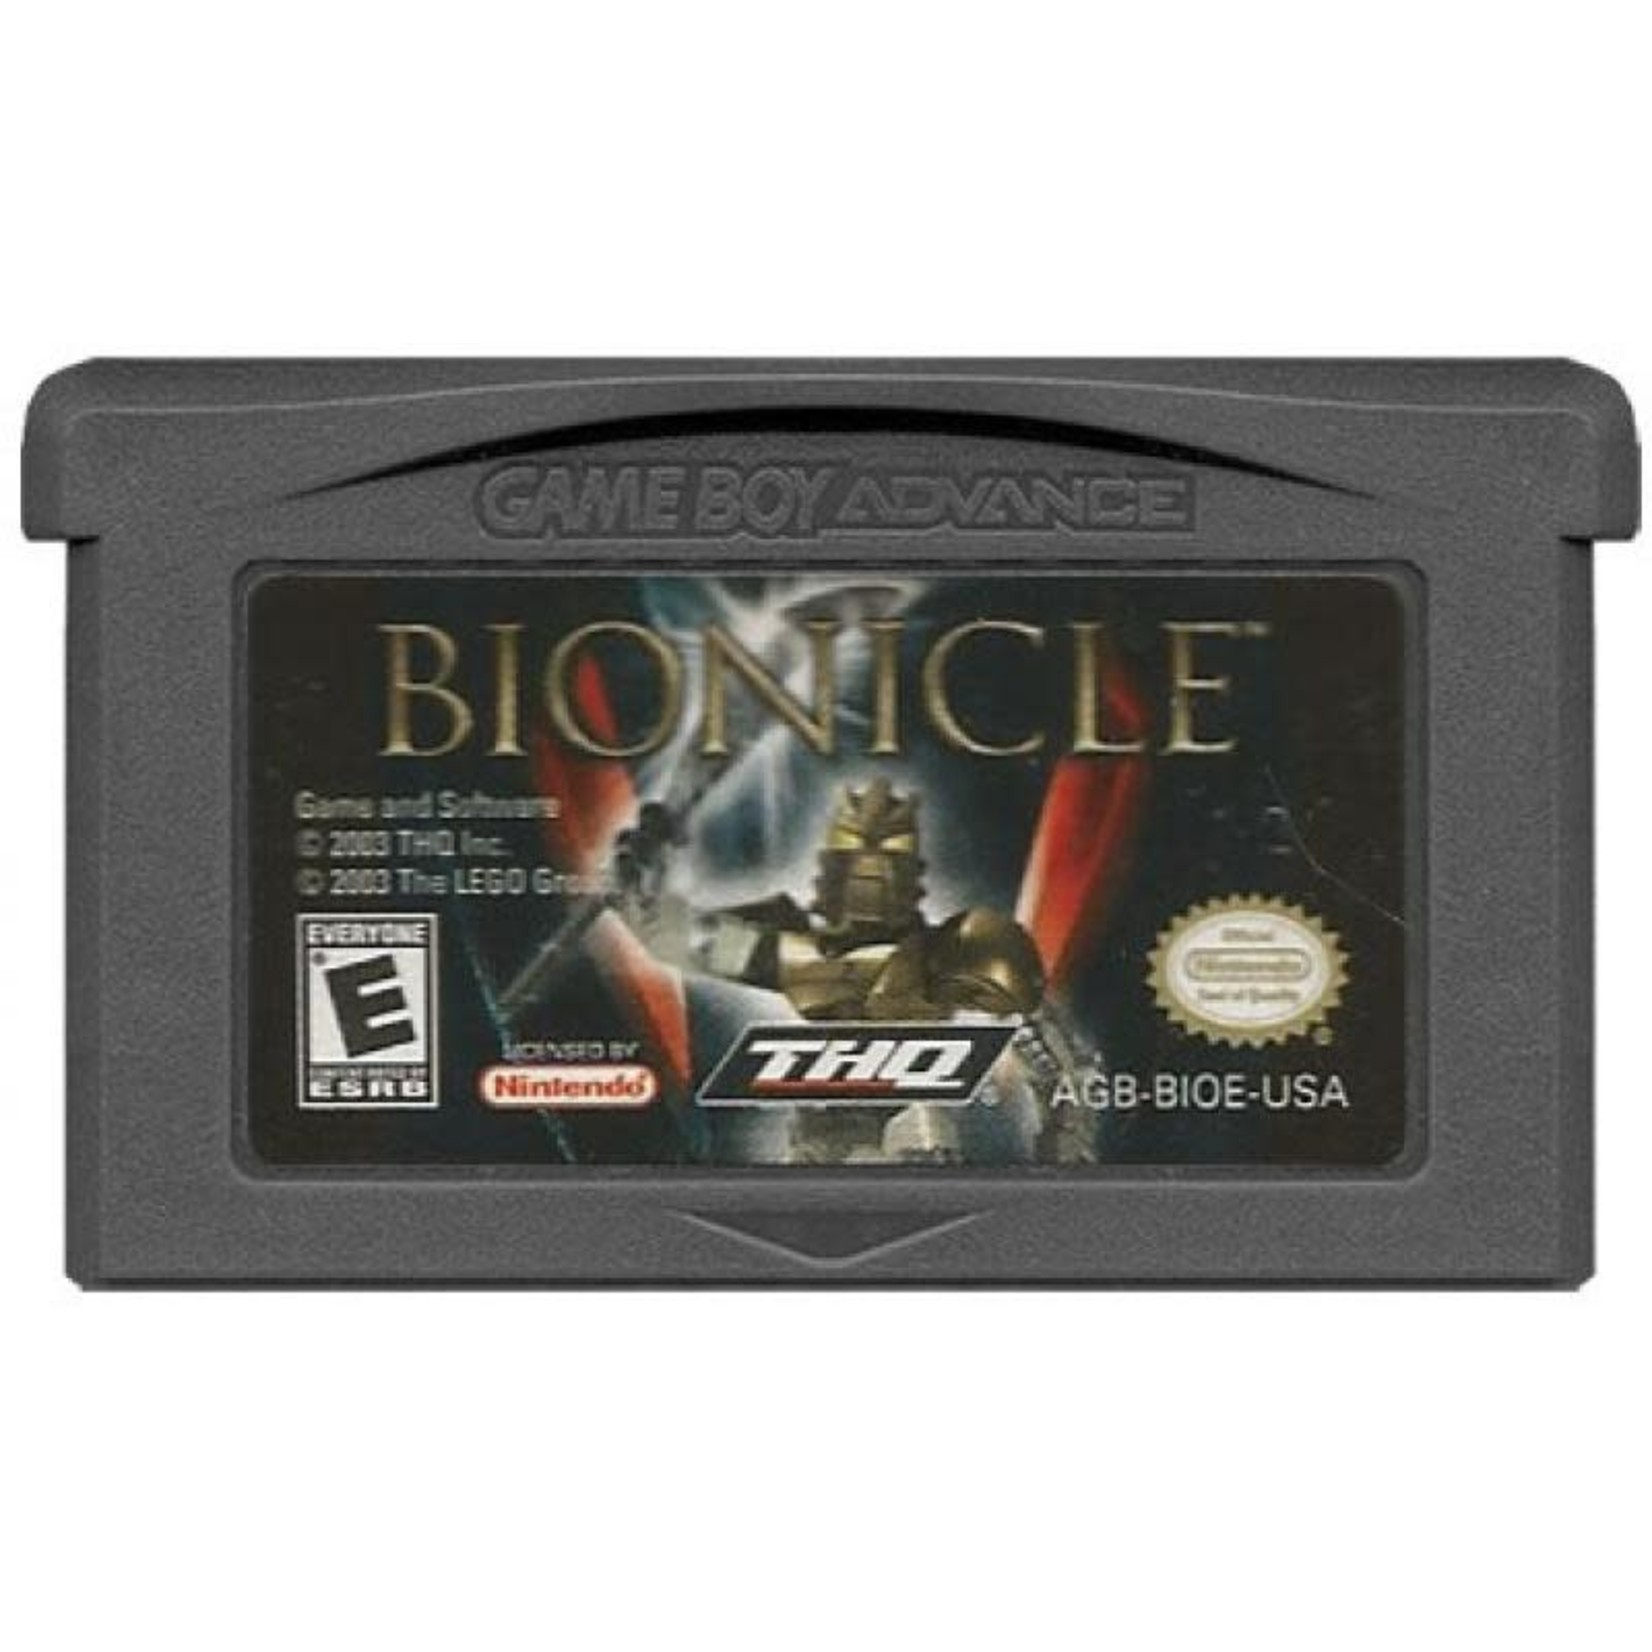 GBAU-Bionicle The Game (CART ONLY)